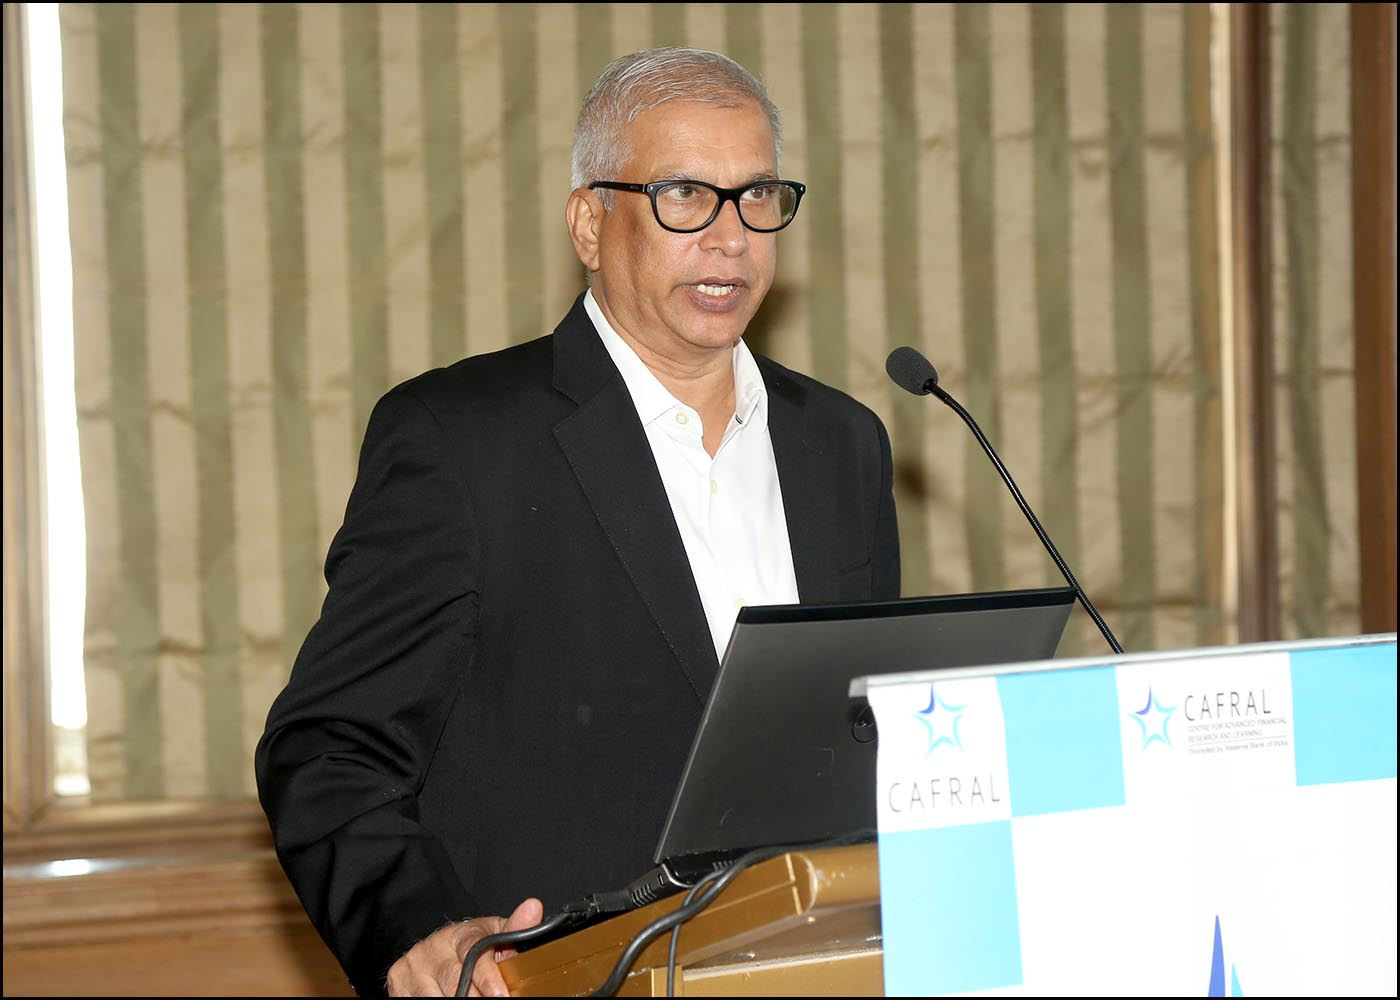 M P Baliga, Sr. Program Director, CAFRAL